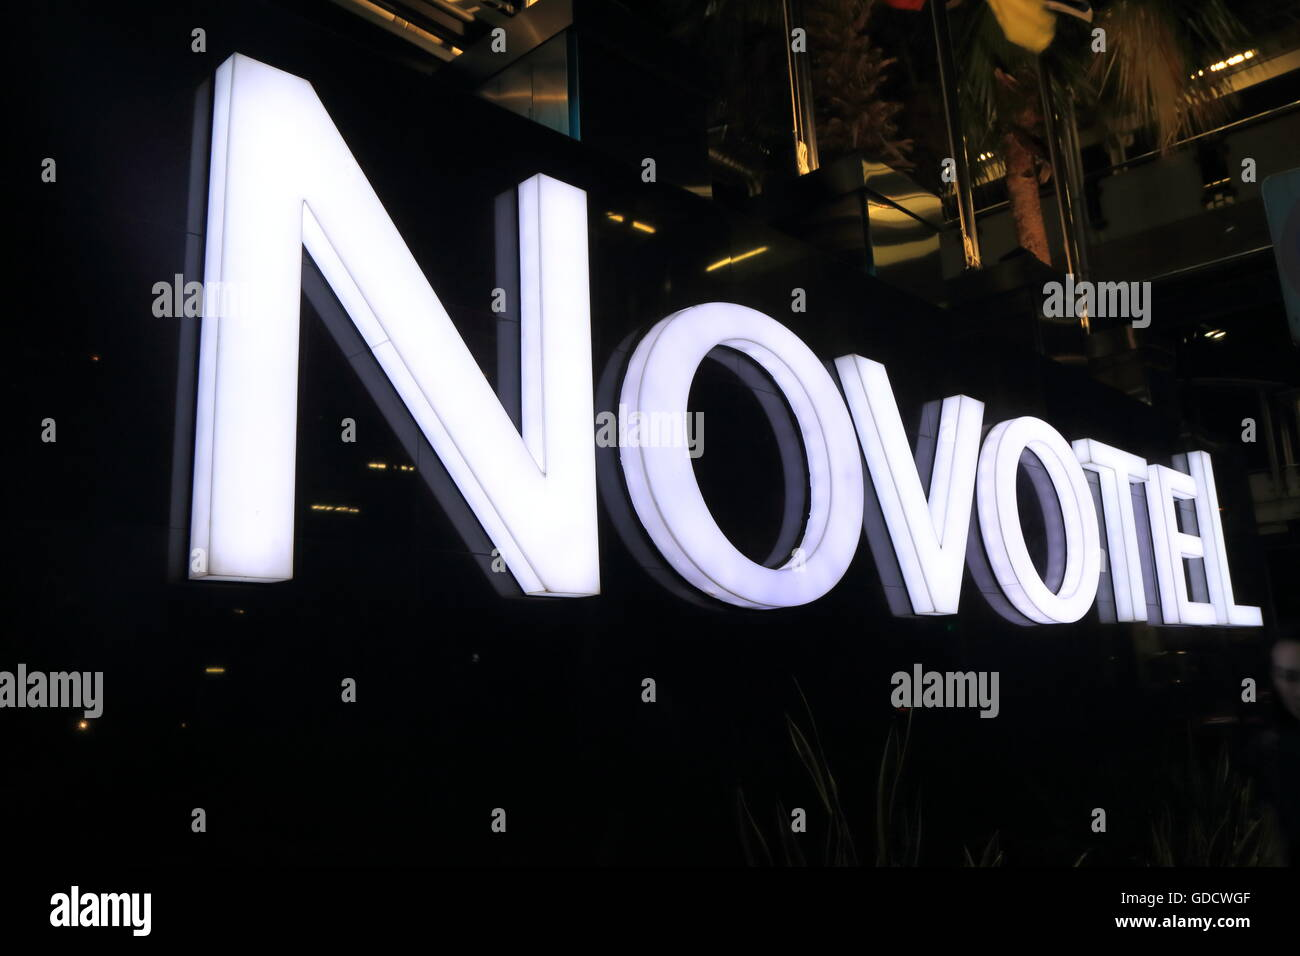 Accor Group Novotel Hotel Mid Scale Hotel Brand Within The Accor Group Which